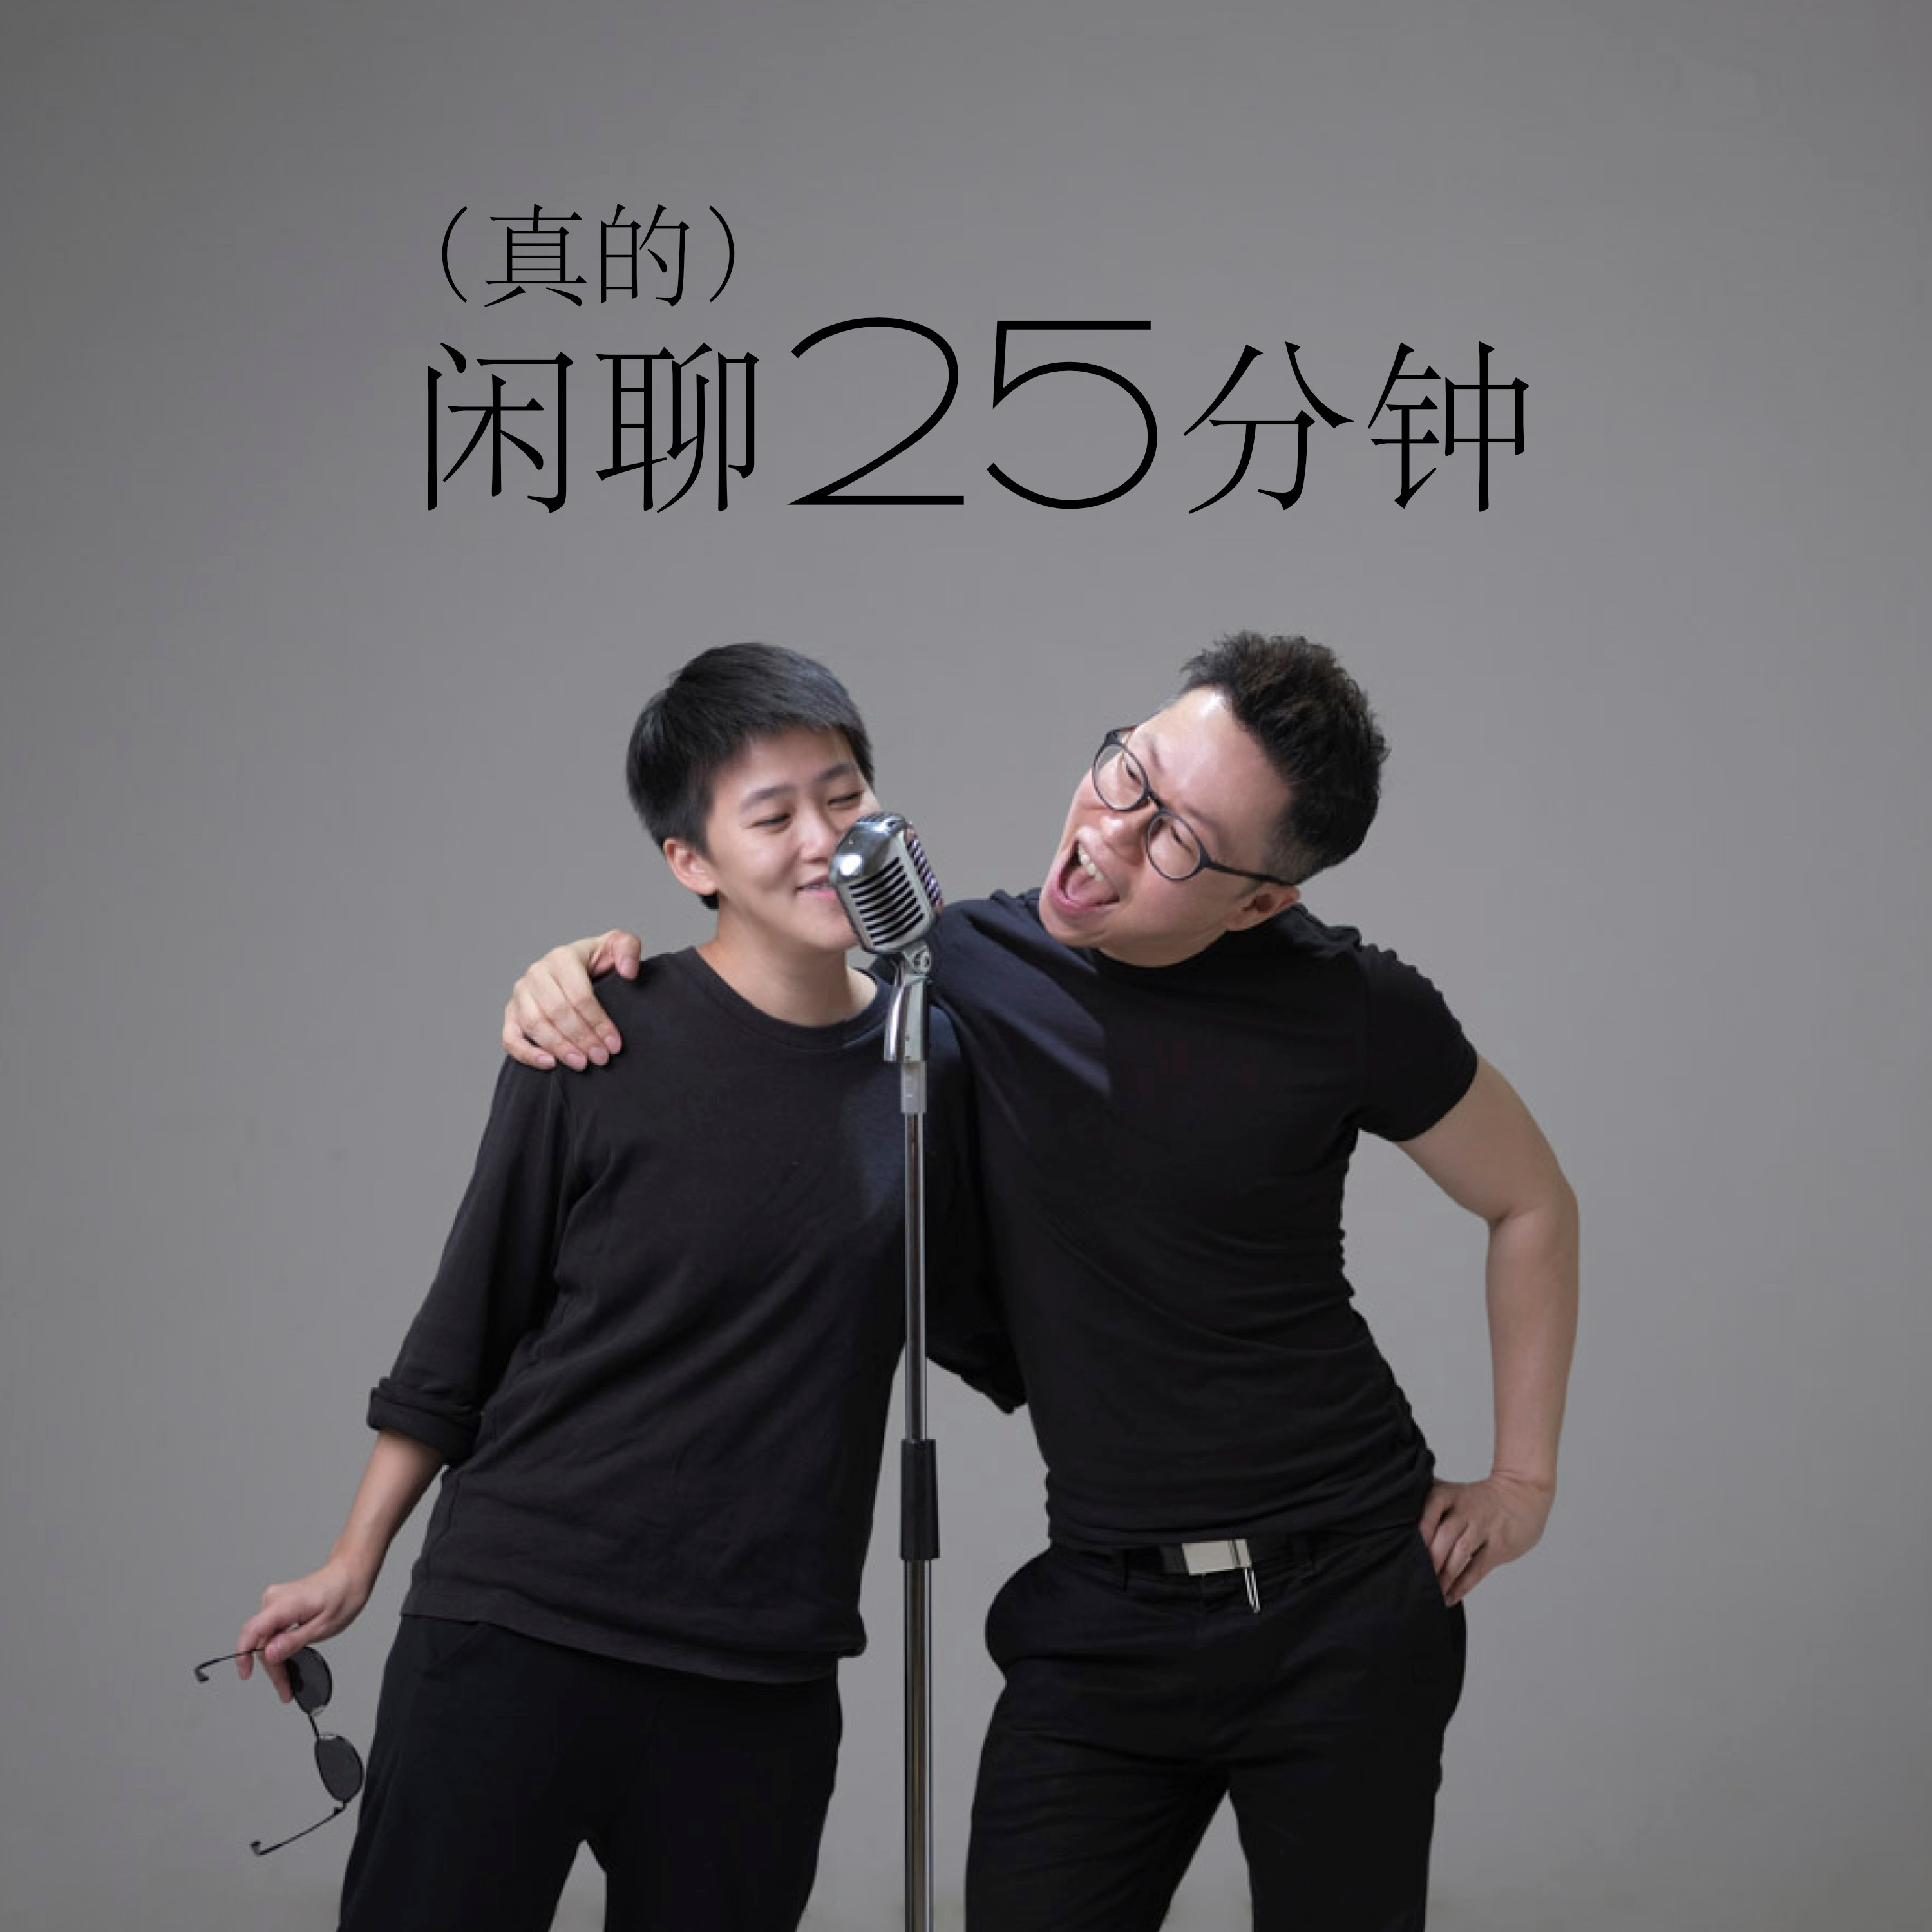 Ep #43 - (真的)闲聊25分钟